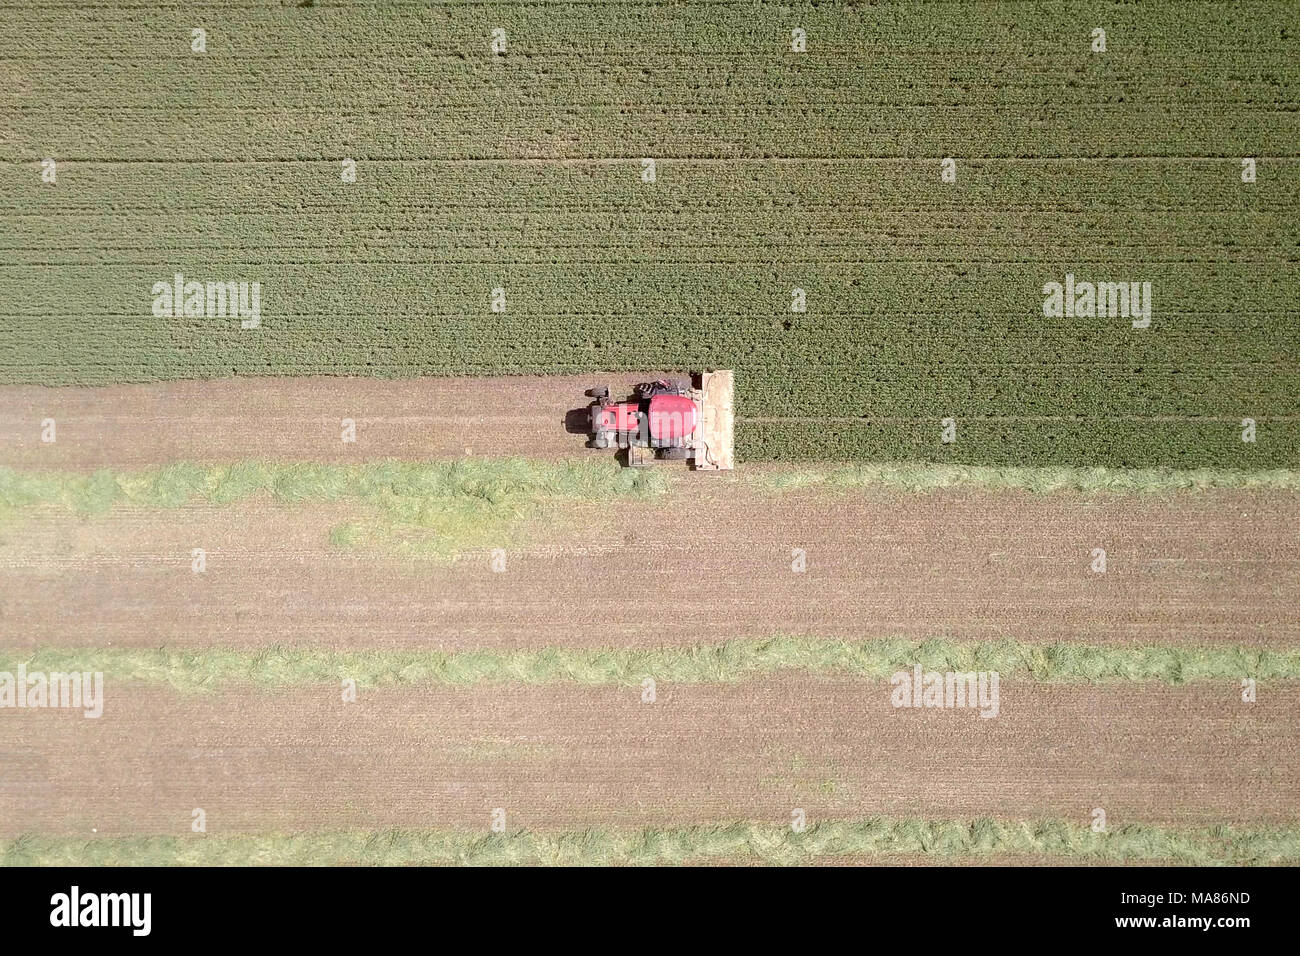 Aerial footage of a Red Combine harvester harvest a green wheat field - Stock Image